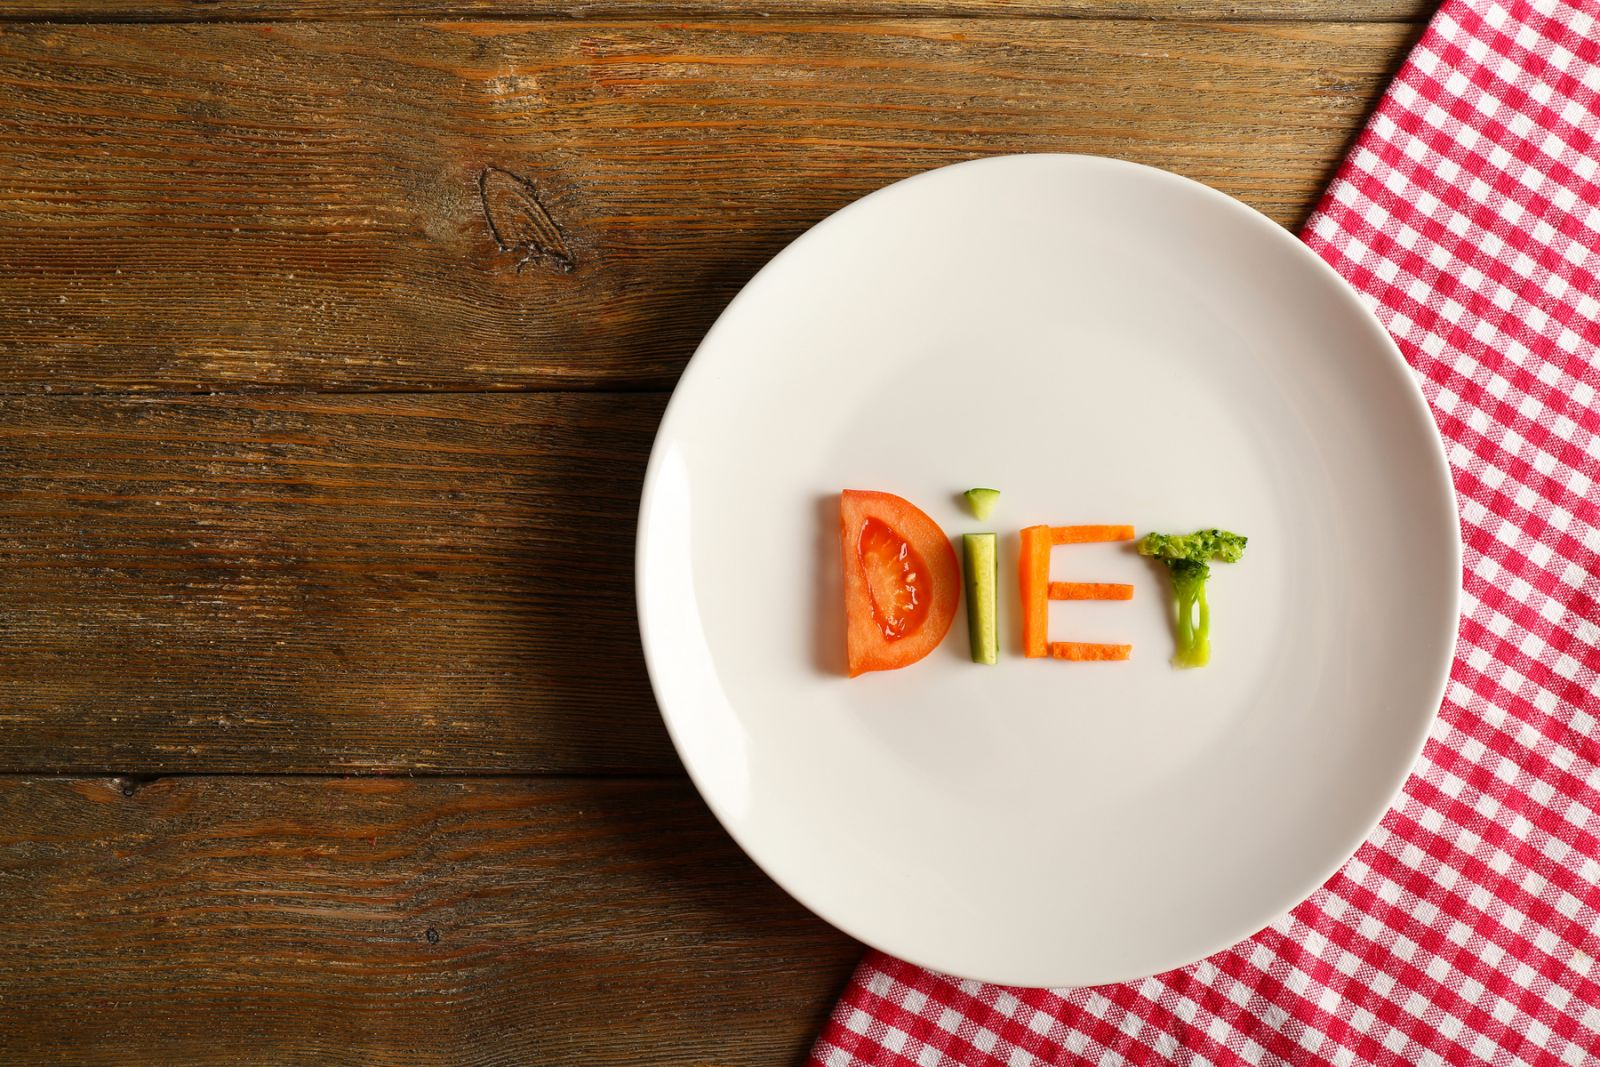 Low fat, low carb, or Mediterranean: which diet is right for